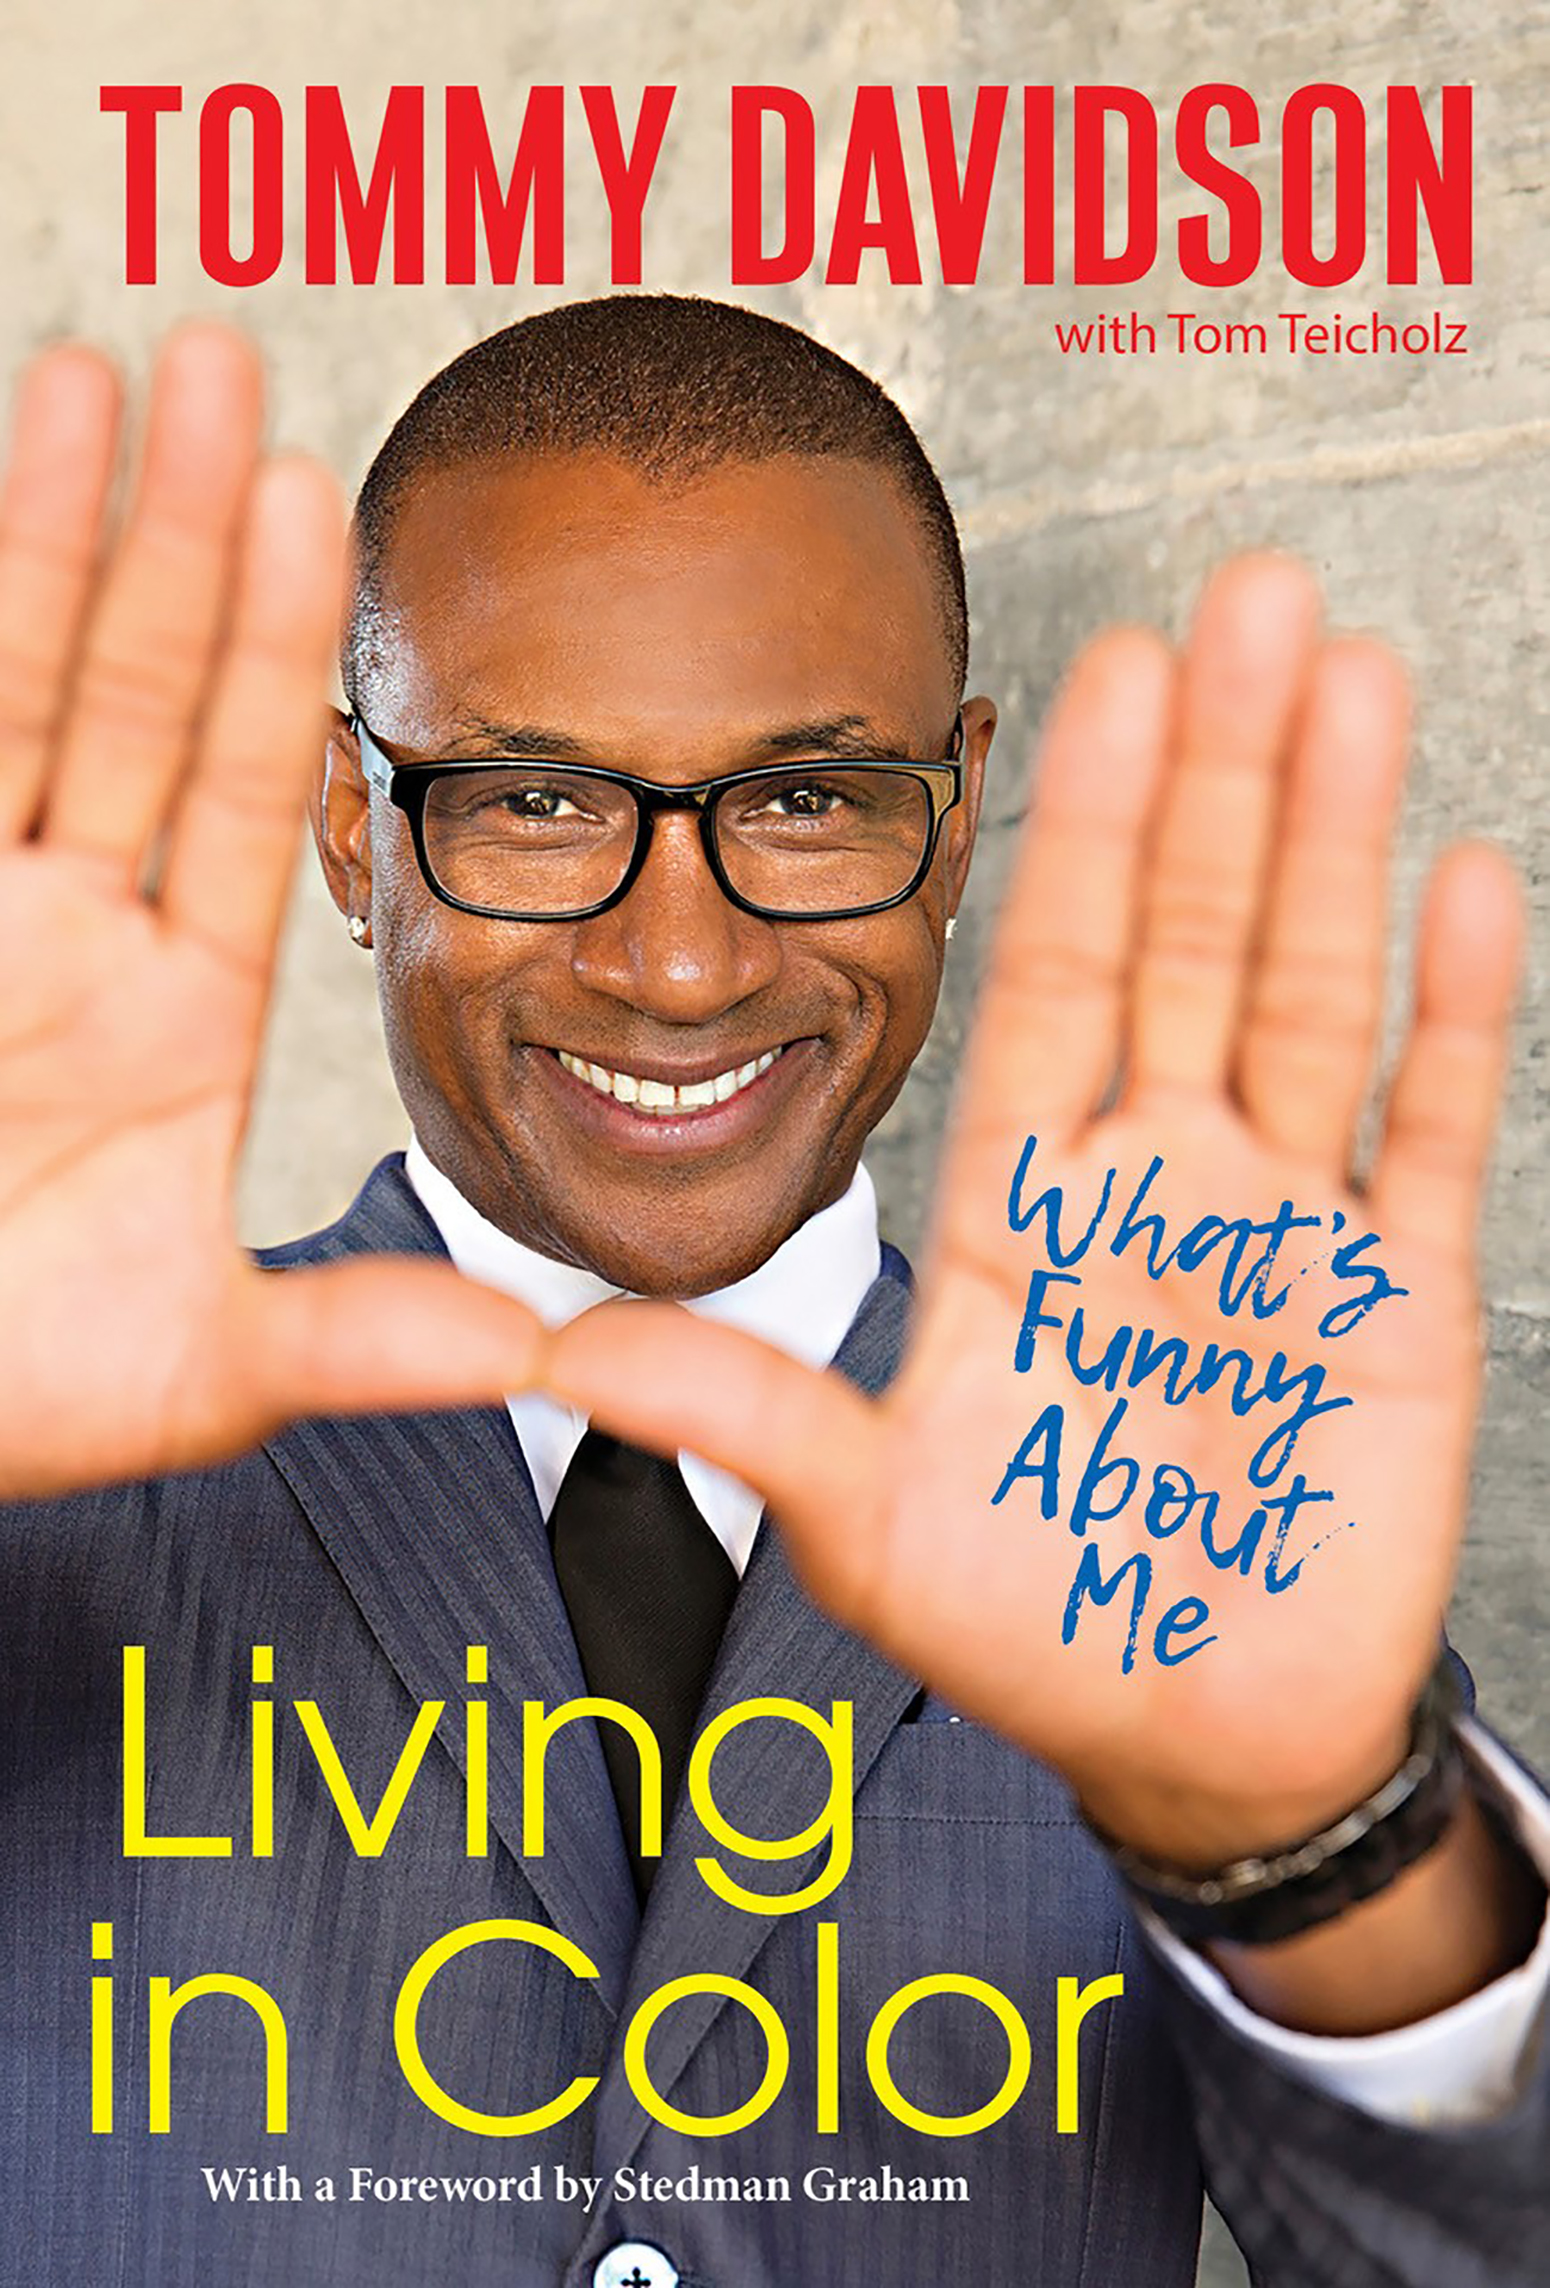 Living in Color [electronic resource] : What's Funny About Me